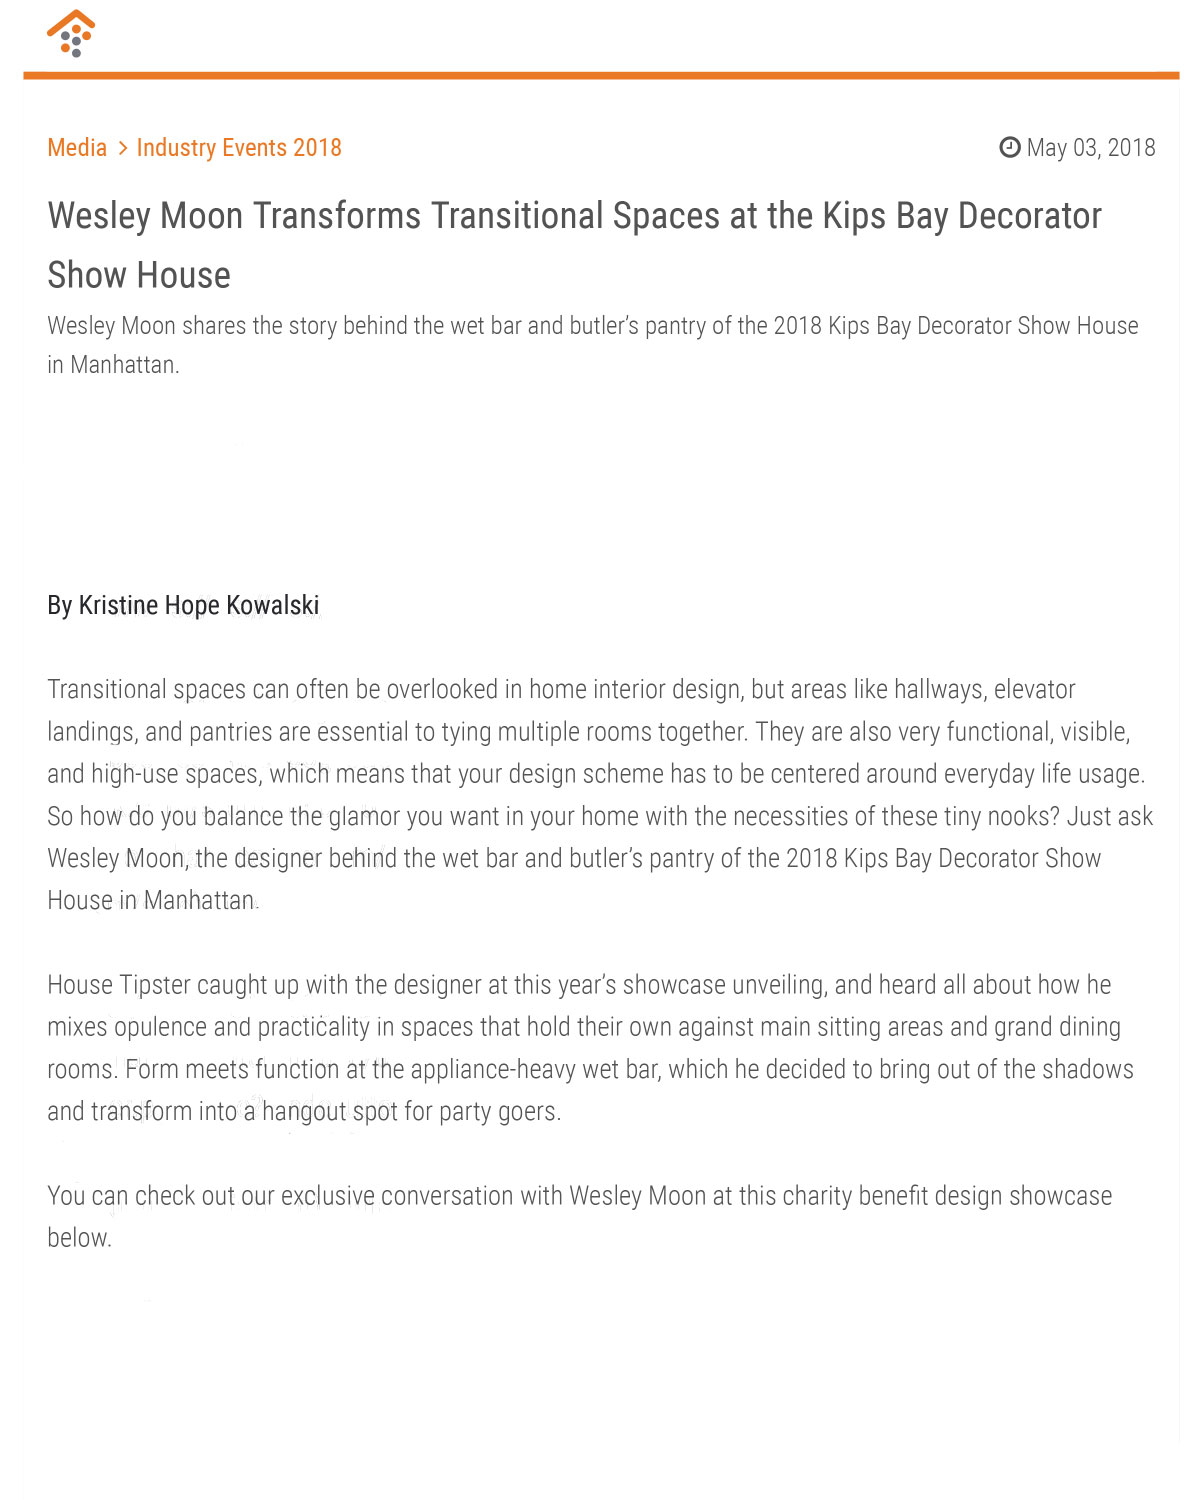 Wesley-Moon-Transforms-Spaces-at-the-Kips-Bay-Decorator-Show-House-1.jpg